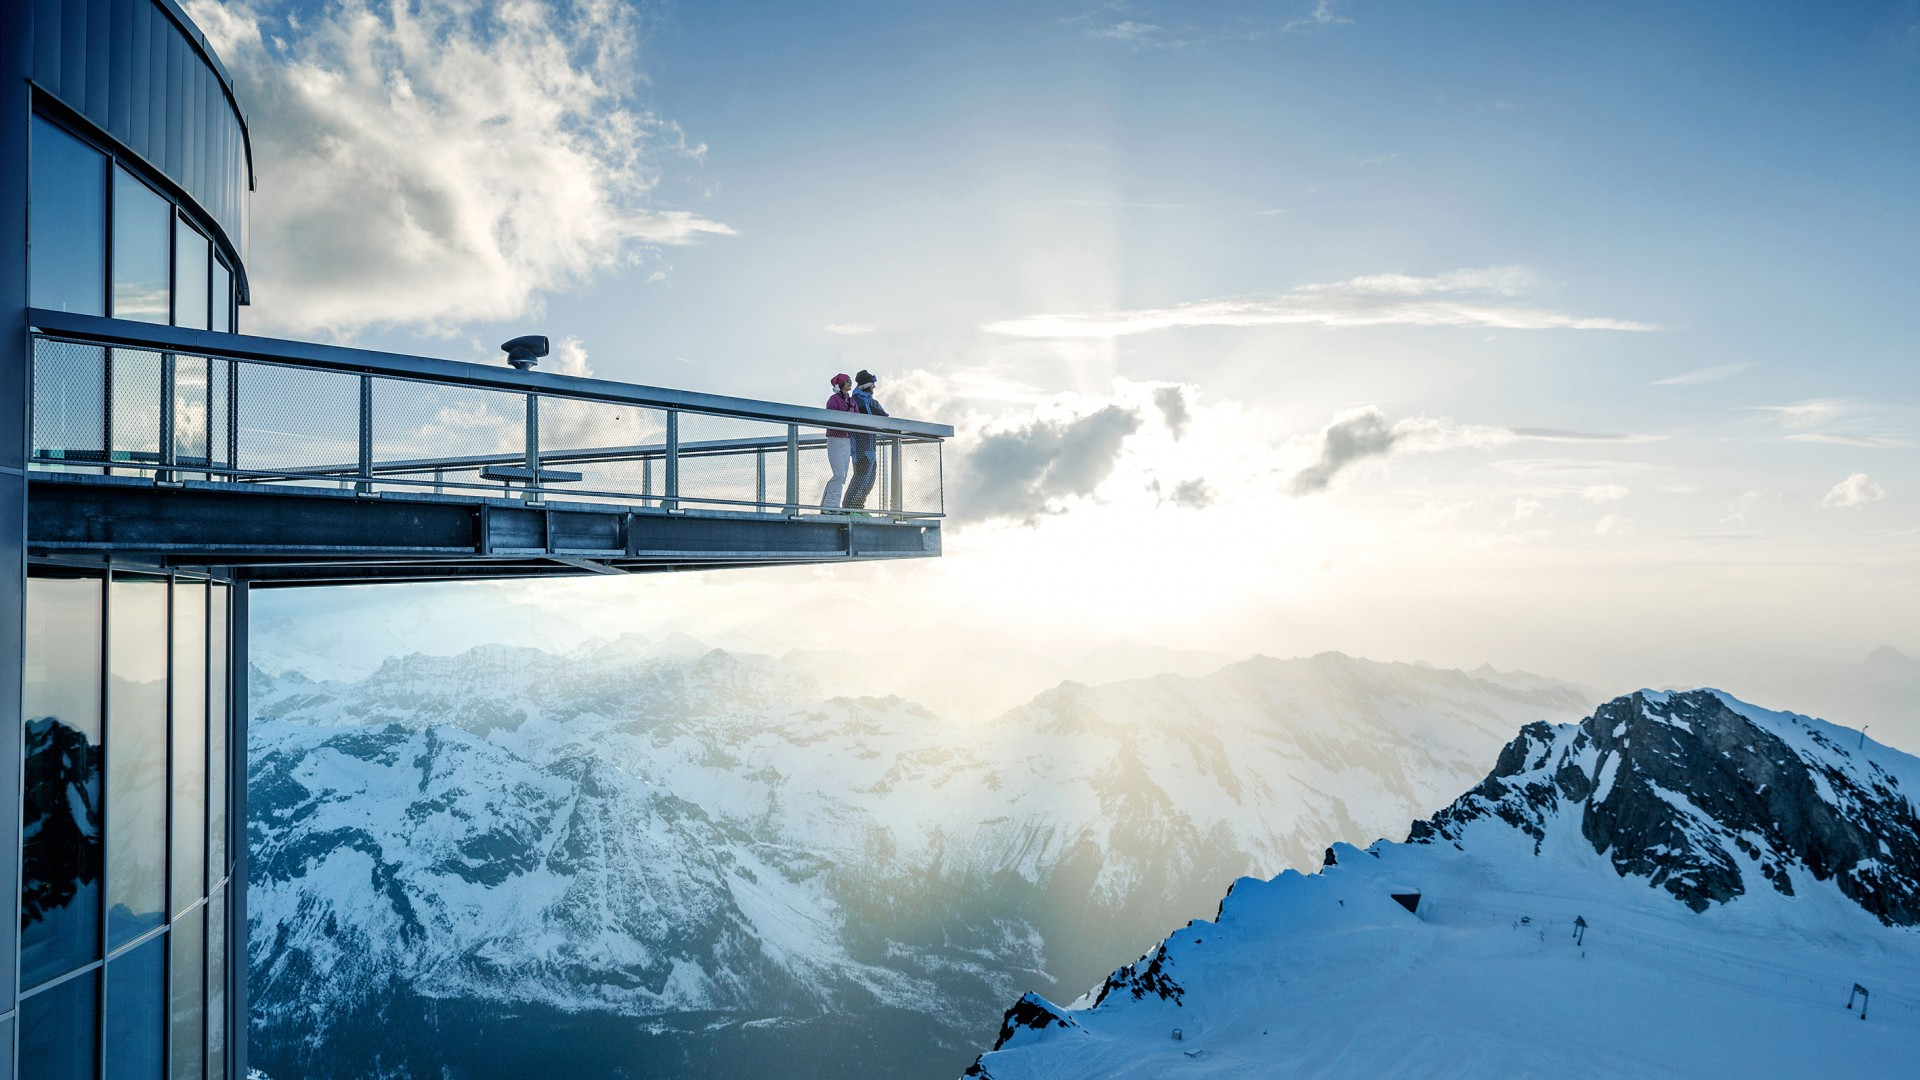 Viewing platform in Zell am See, Austria